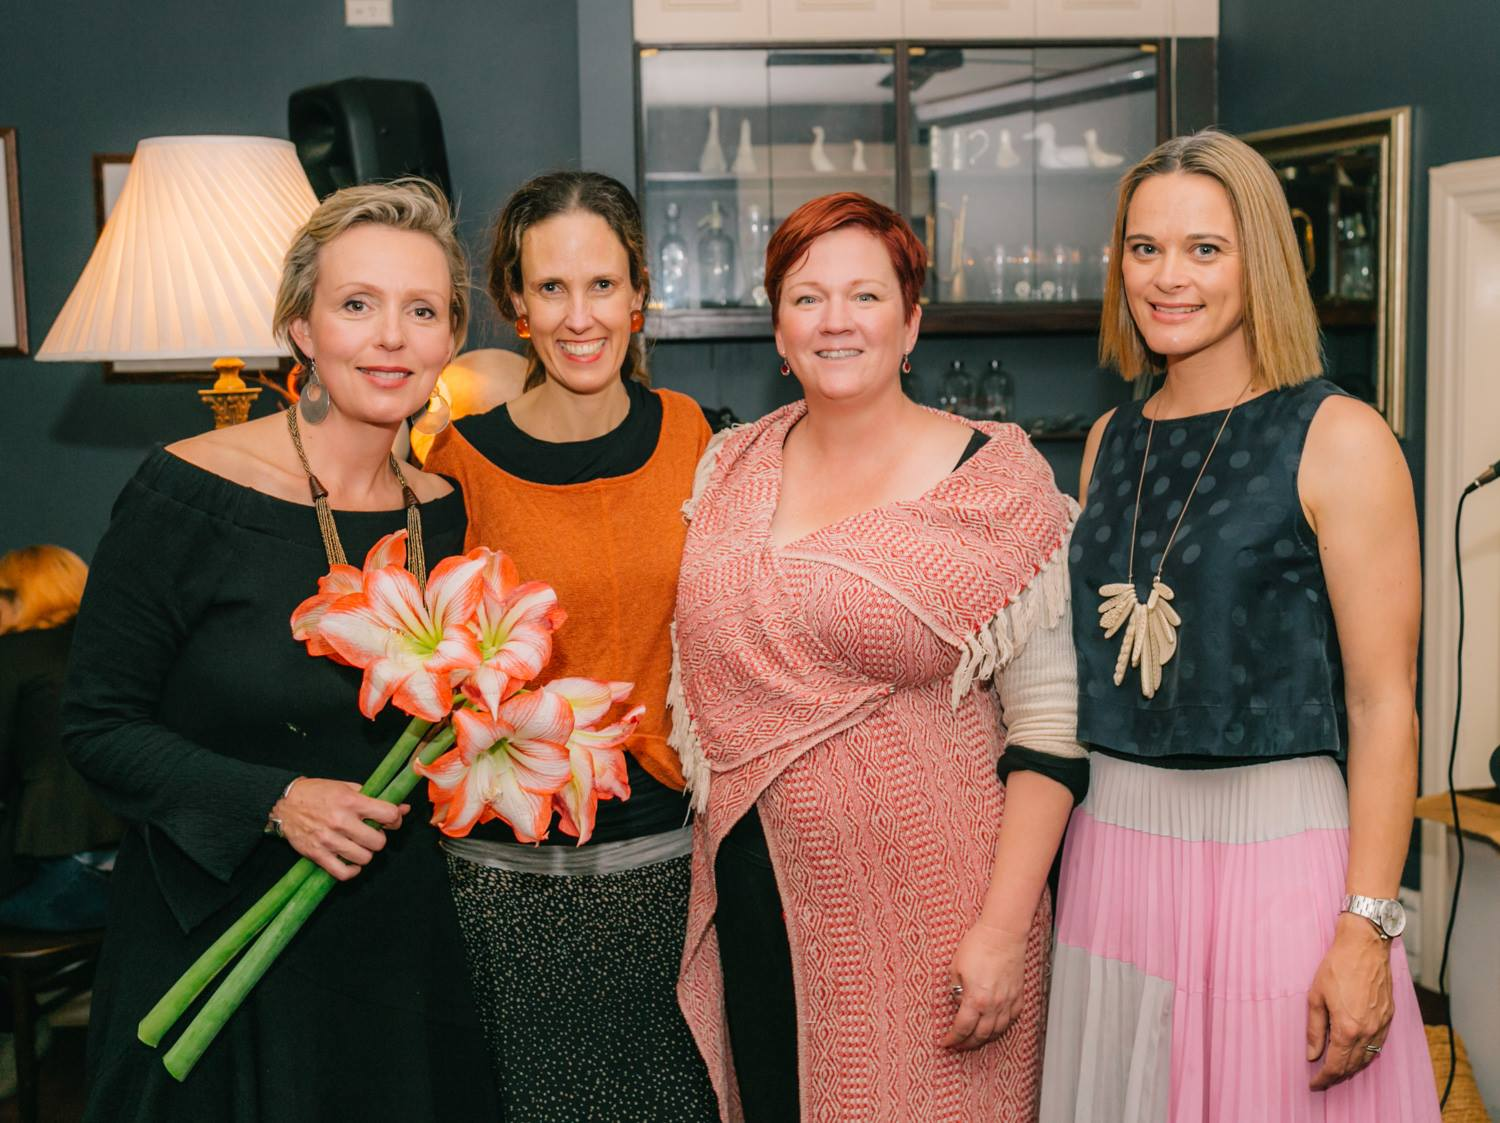 Our featured presenter Louise Trevitt, with artist Yaeli Ohana and Jade Oakley and Lizzie Mackinlay from Mary's House.